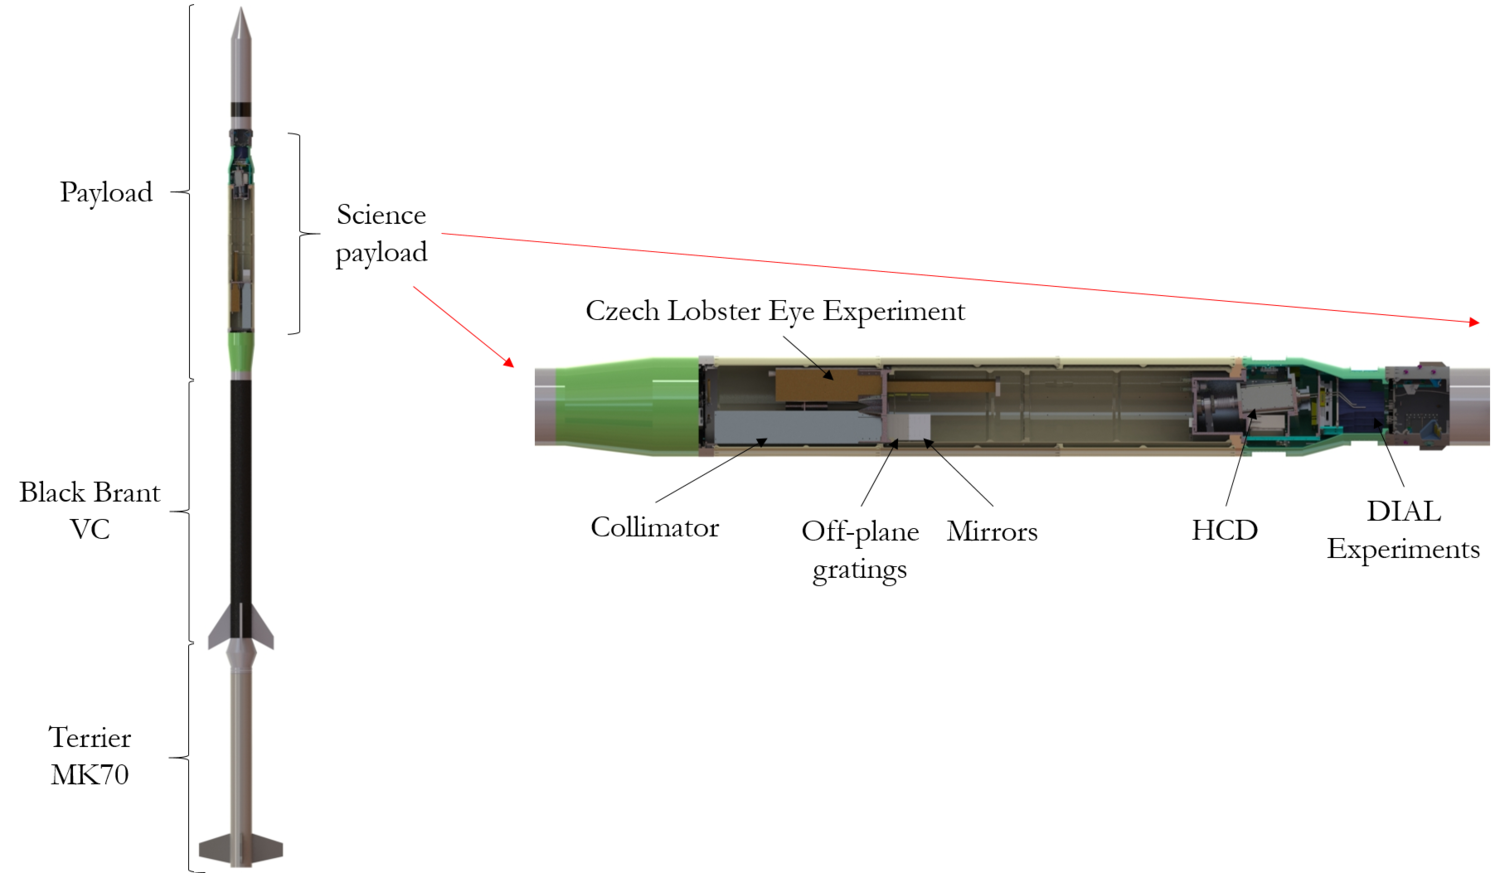 LEFT - THE WHOLE ROCKET PAYLOAD OF WRXR WITH THE LOCATION OF THE SCIENCE PAYLOAD SHOW. RIGHT - A ZOOMED IN SECTION ON THE SCIENTIFIC PAYLOAD